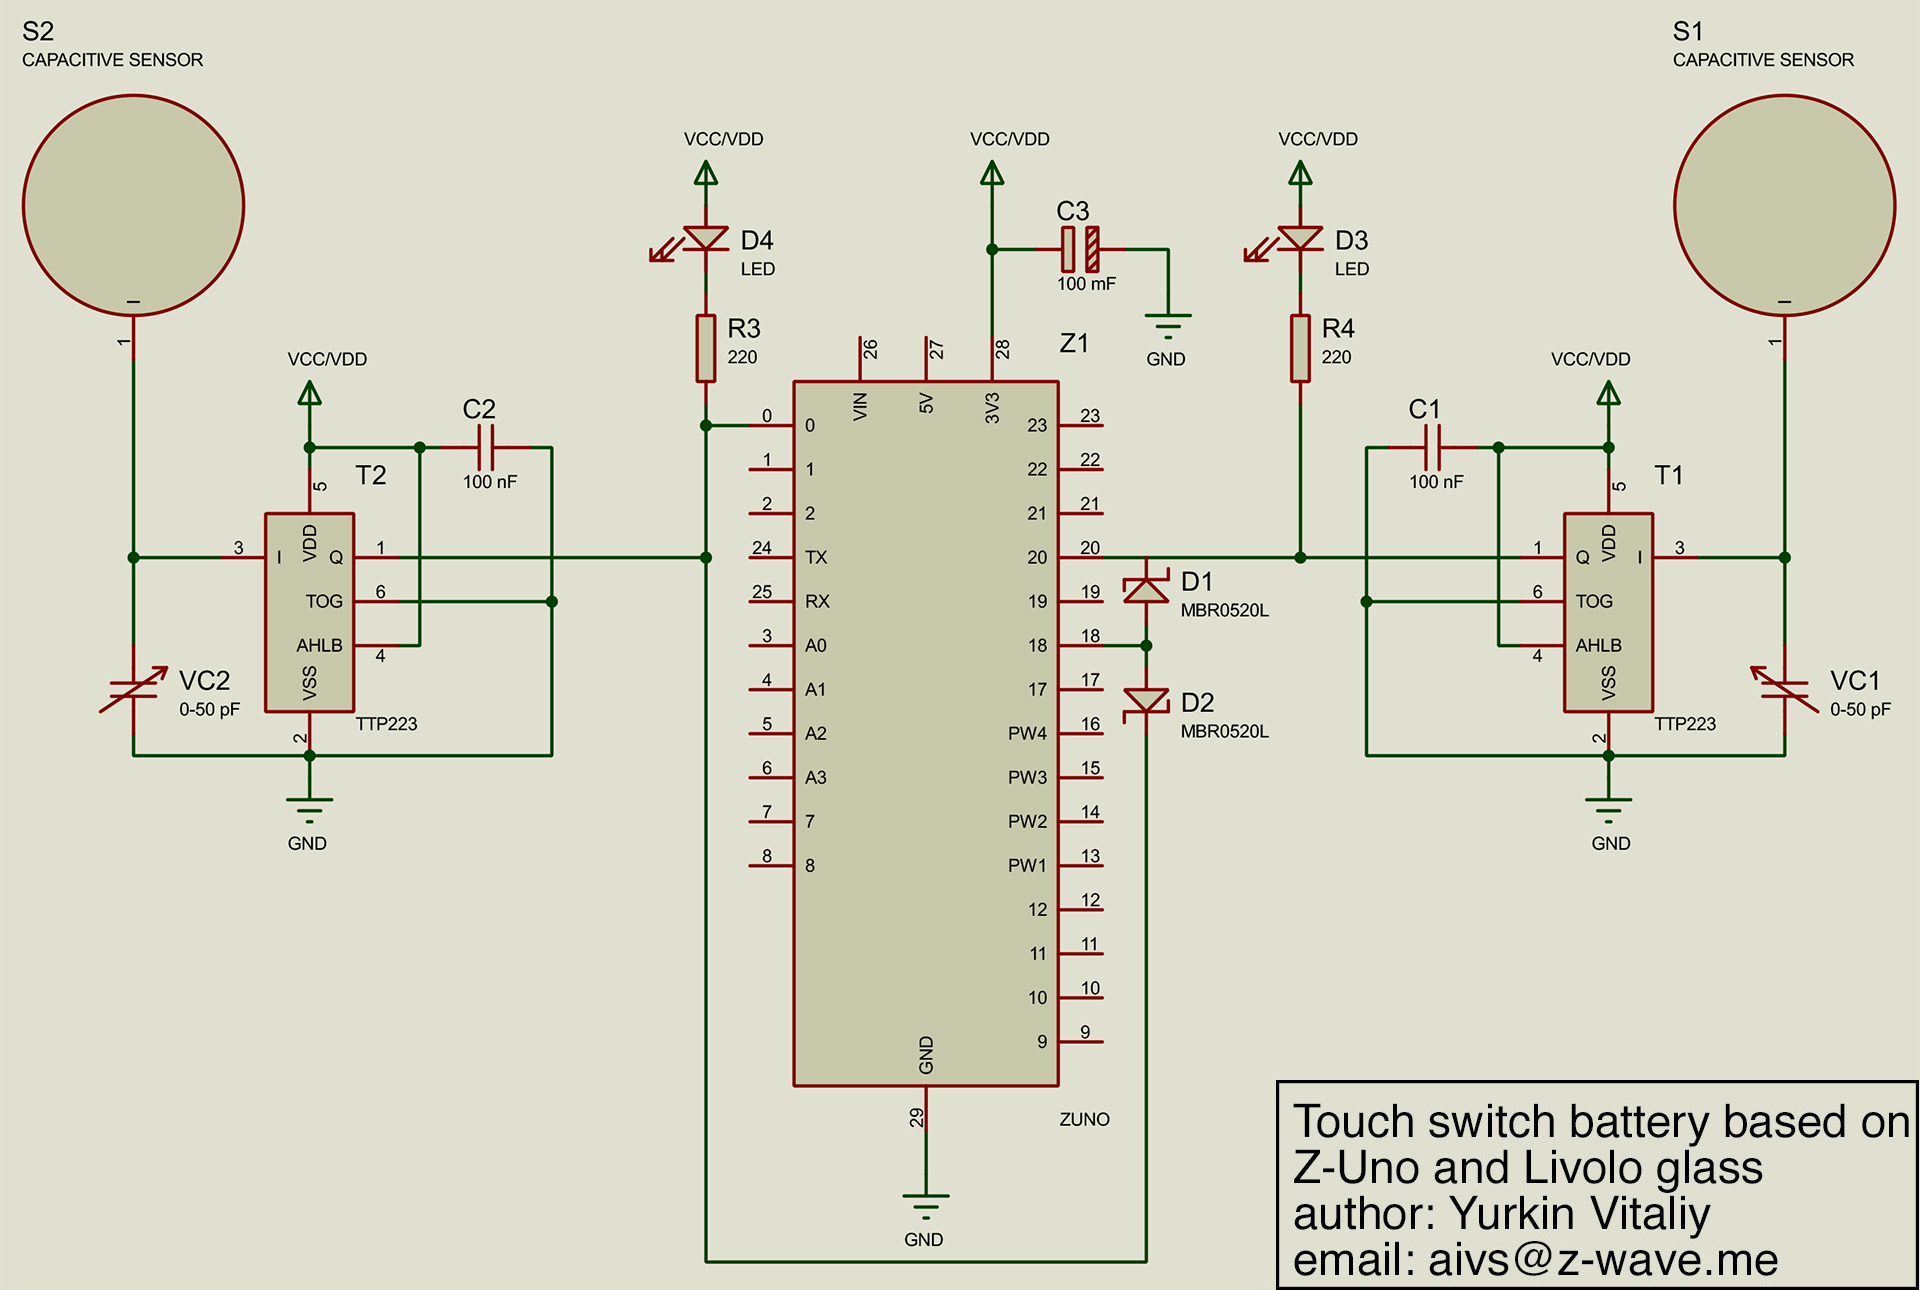 parallel battery wiring diagram 1996 ford e350 sensor wall switch based on livolo glass